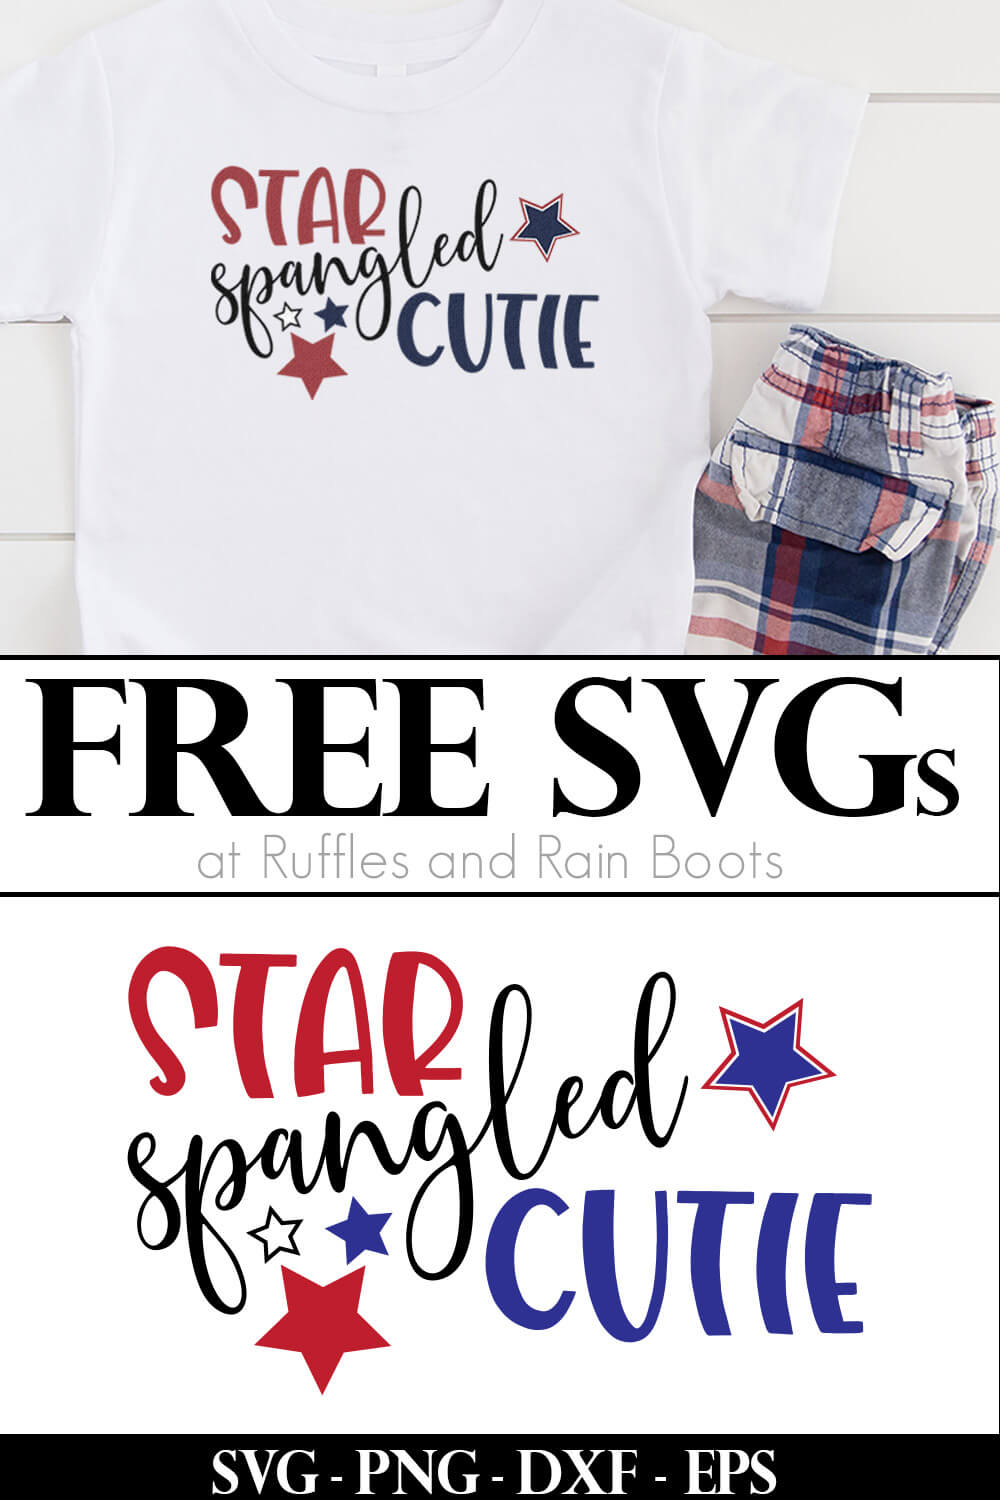 collage of t shirt with red white and blue design on white wood and free cut file on white background with text which reads free svgs for cricut and silhouette